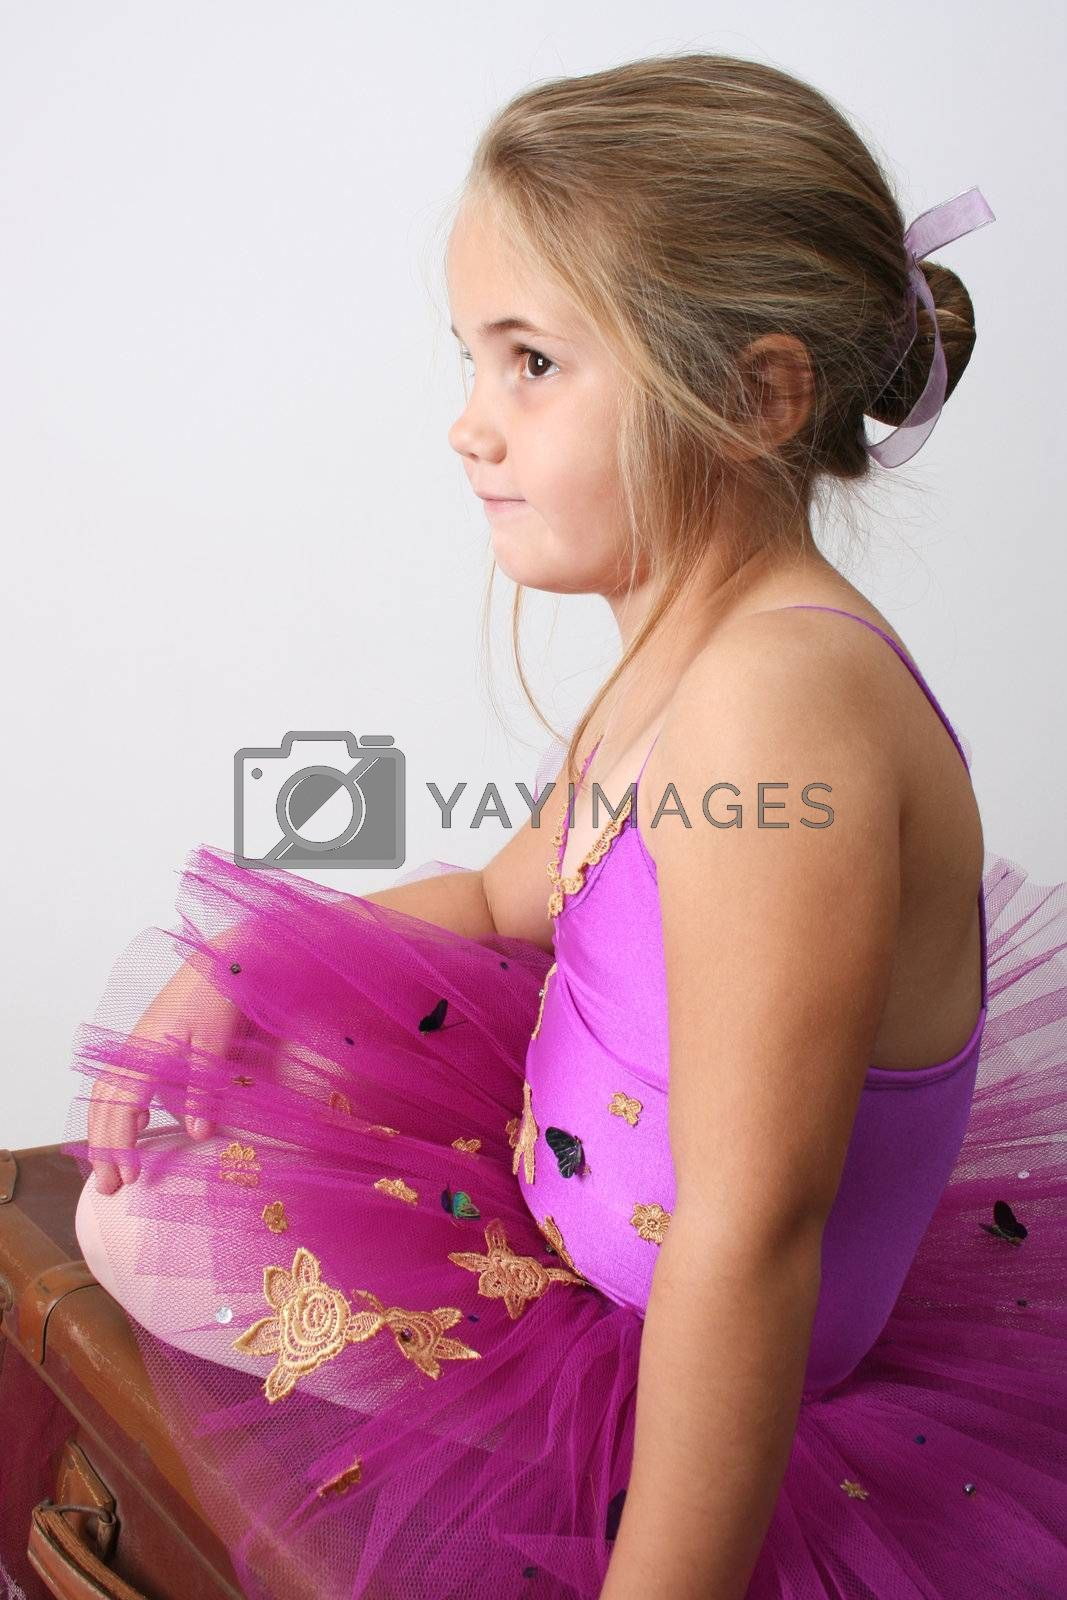 Young girl wearing a tutu dreaming of becoming a ballet dancer